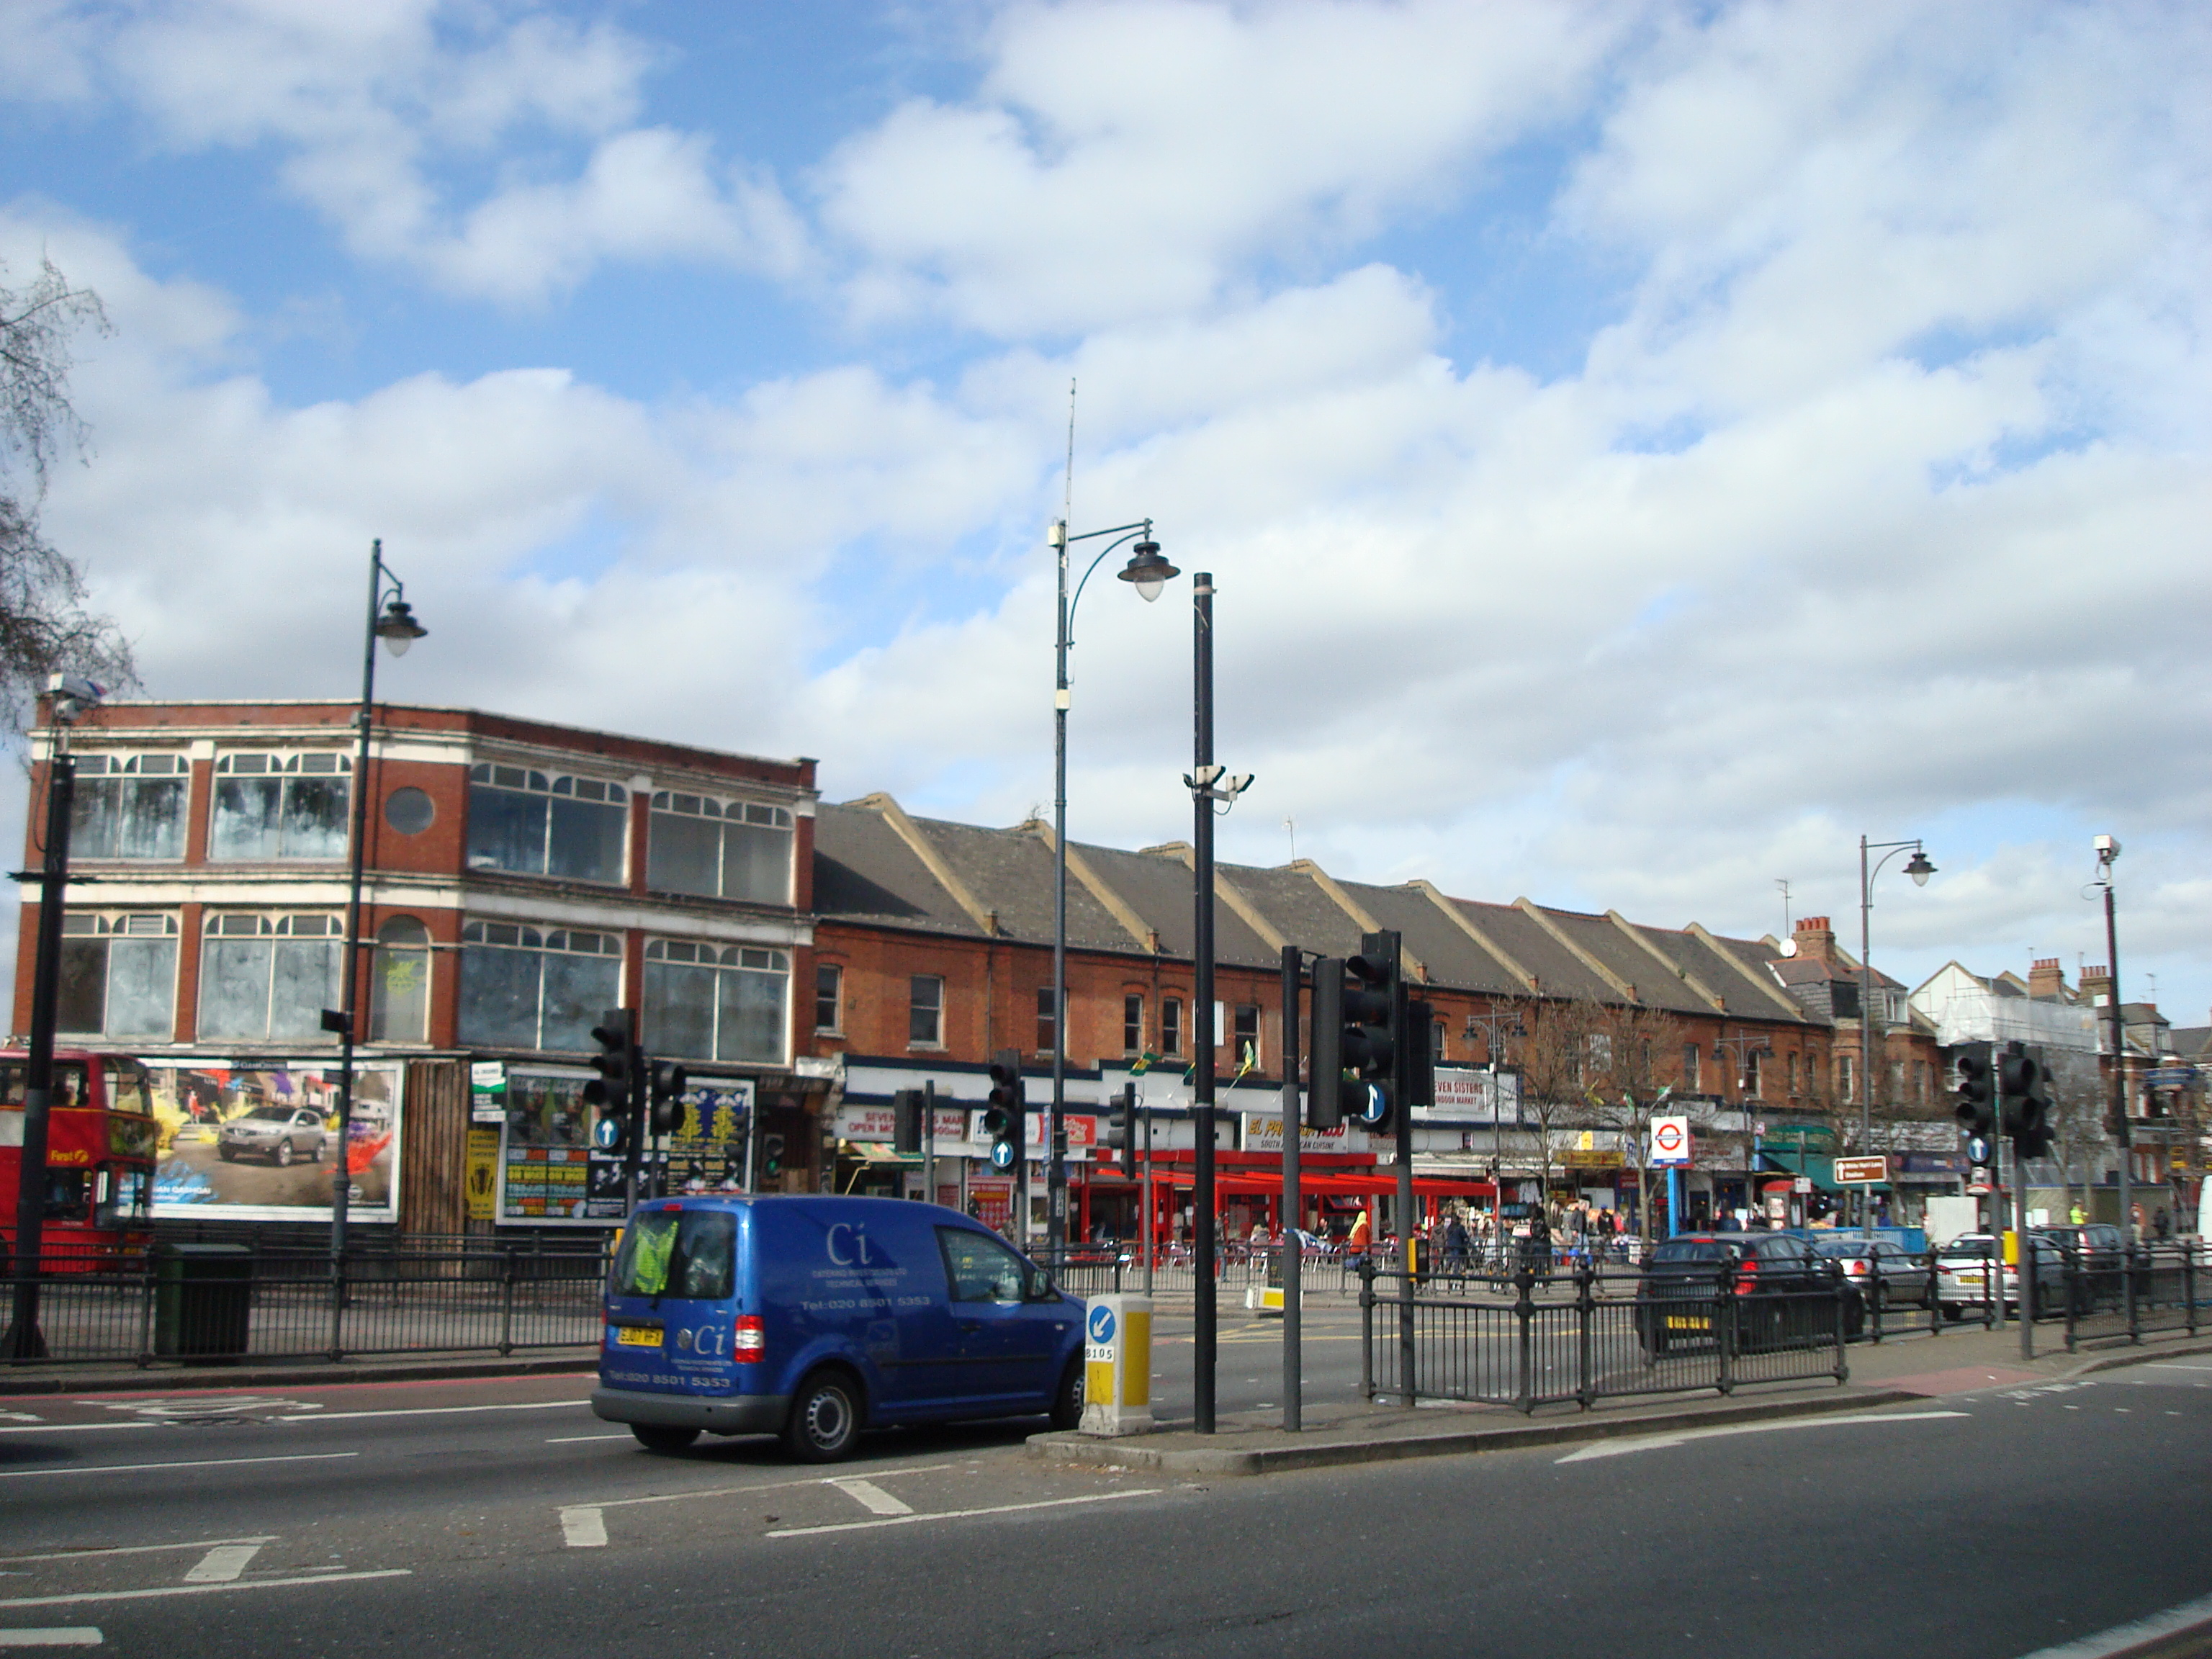 Ward Corner, South Tottenham, N15